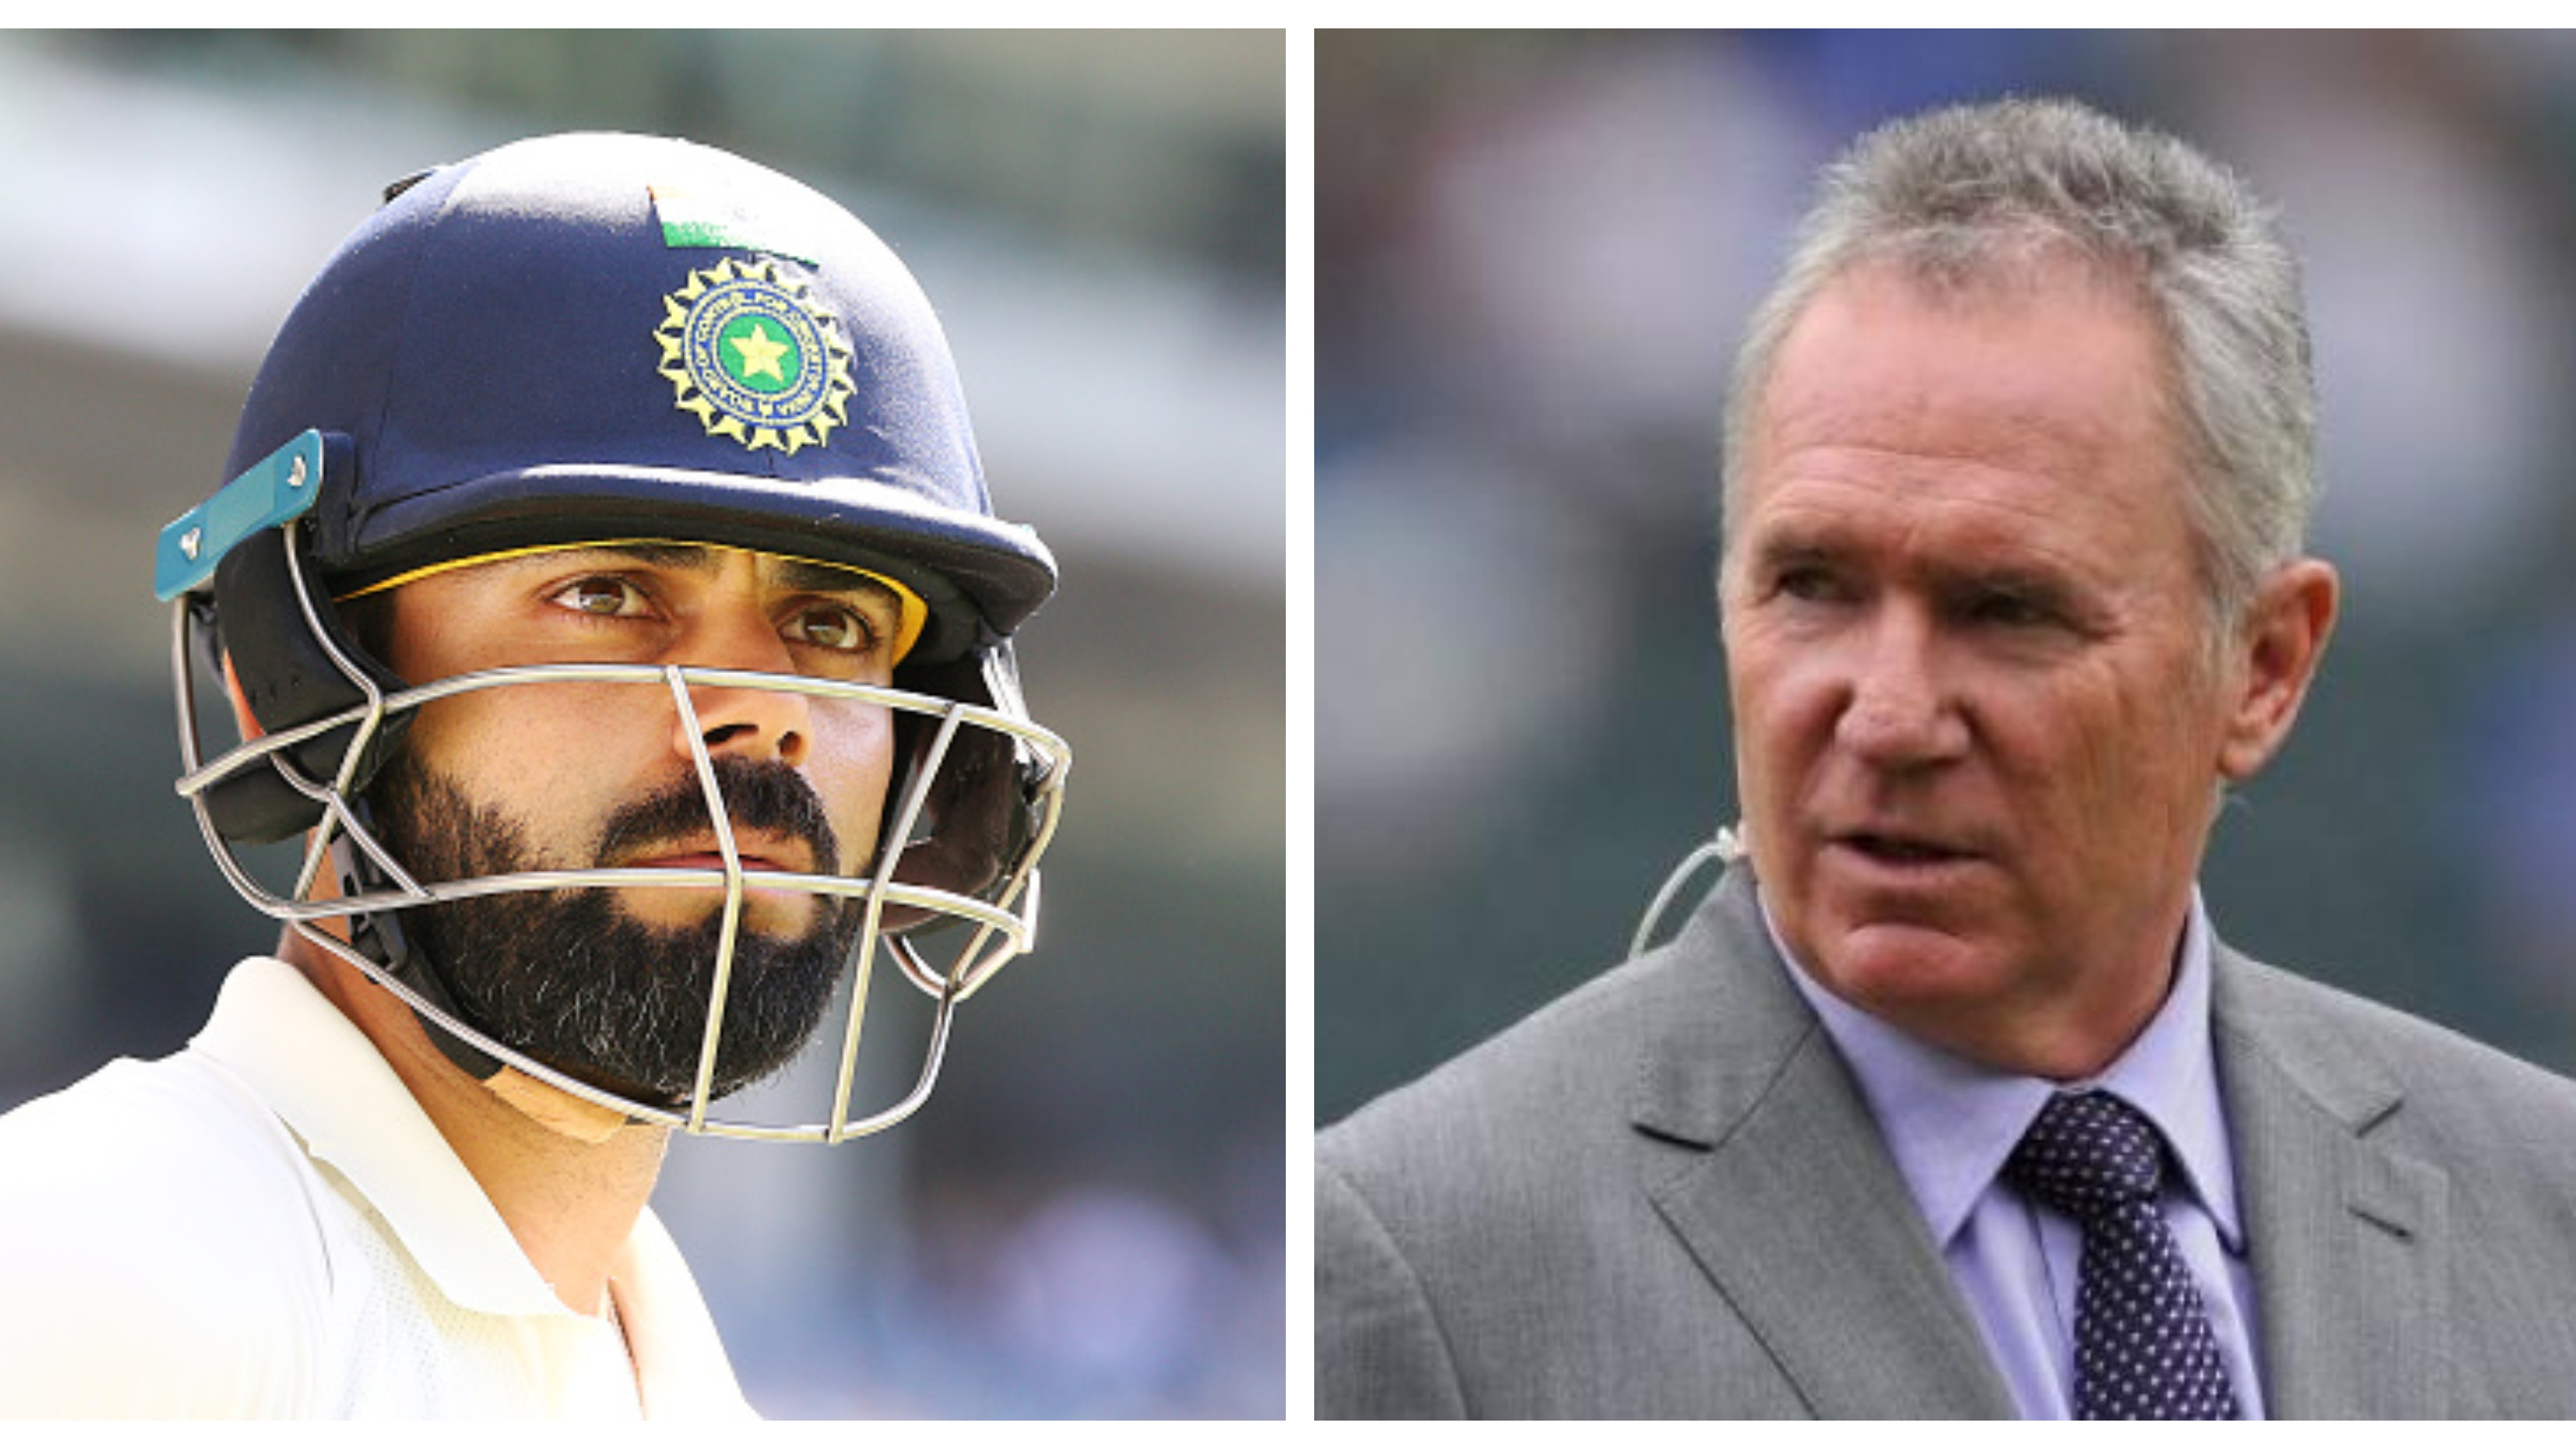 AUS v IND 2018-19: Surprised Virat Kohli didn't enforce the follow-on, says Allan Border